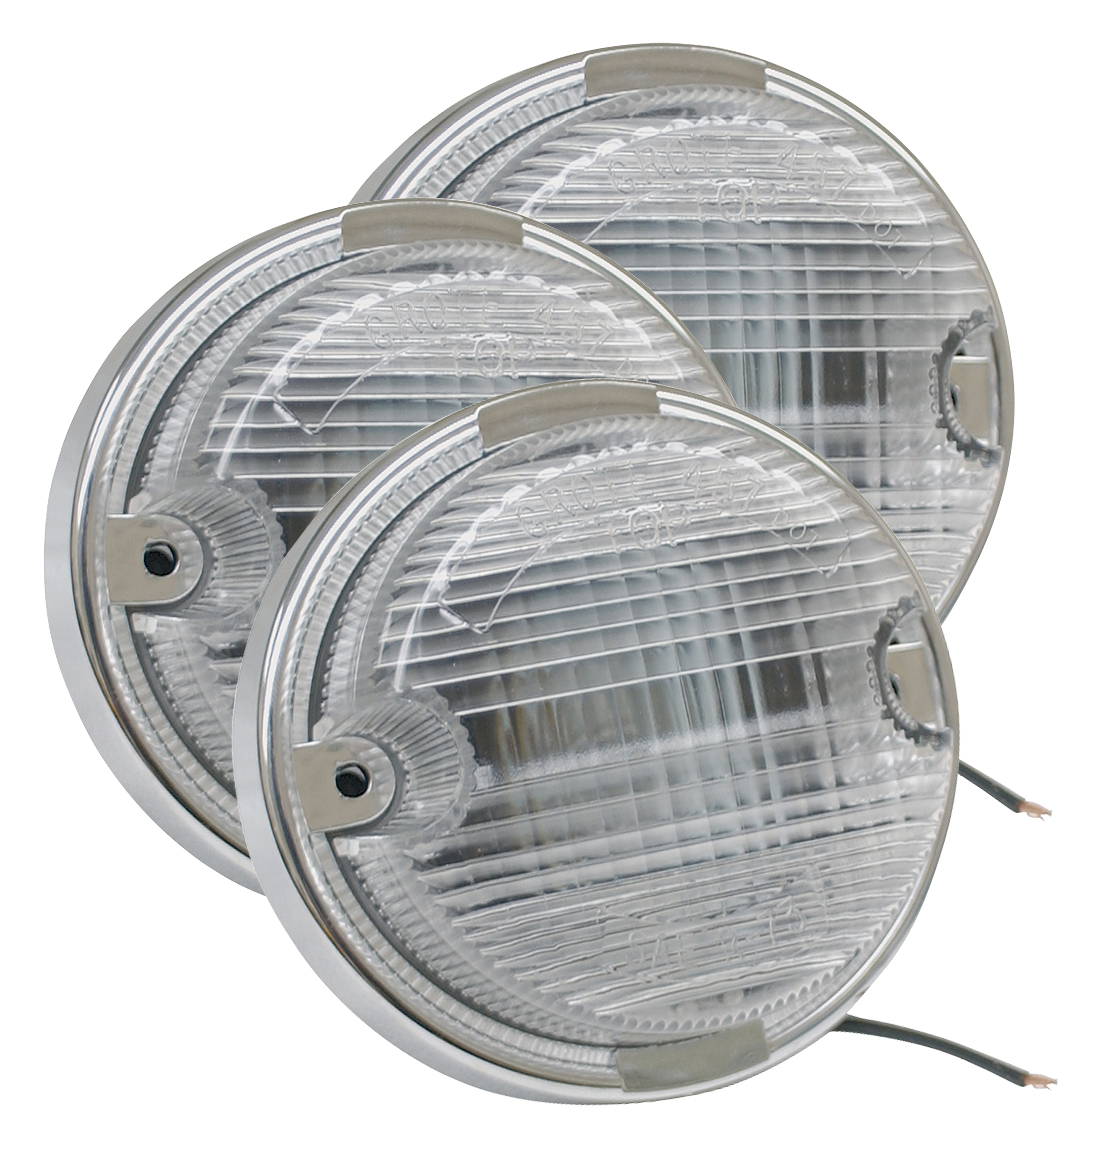 62021-3 – OE-Style Dual-System Backup Light, Chrome Plated Bezel, Clear, Bulk Pack